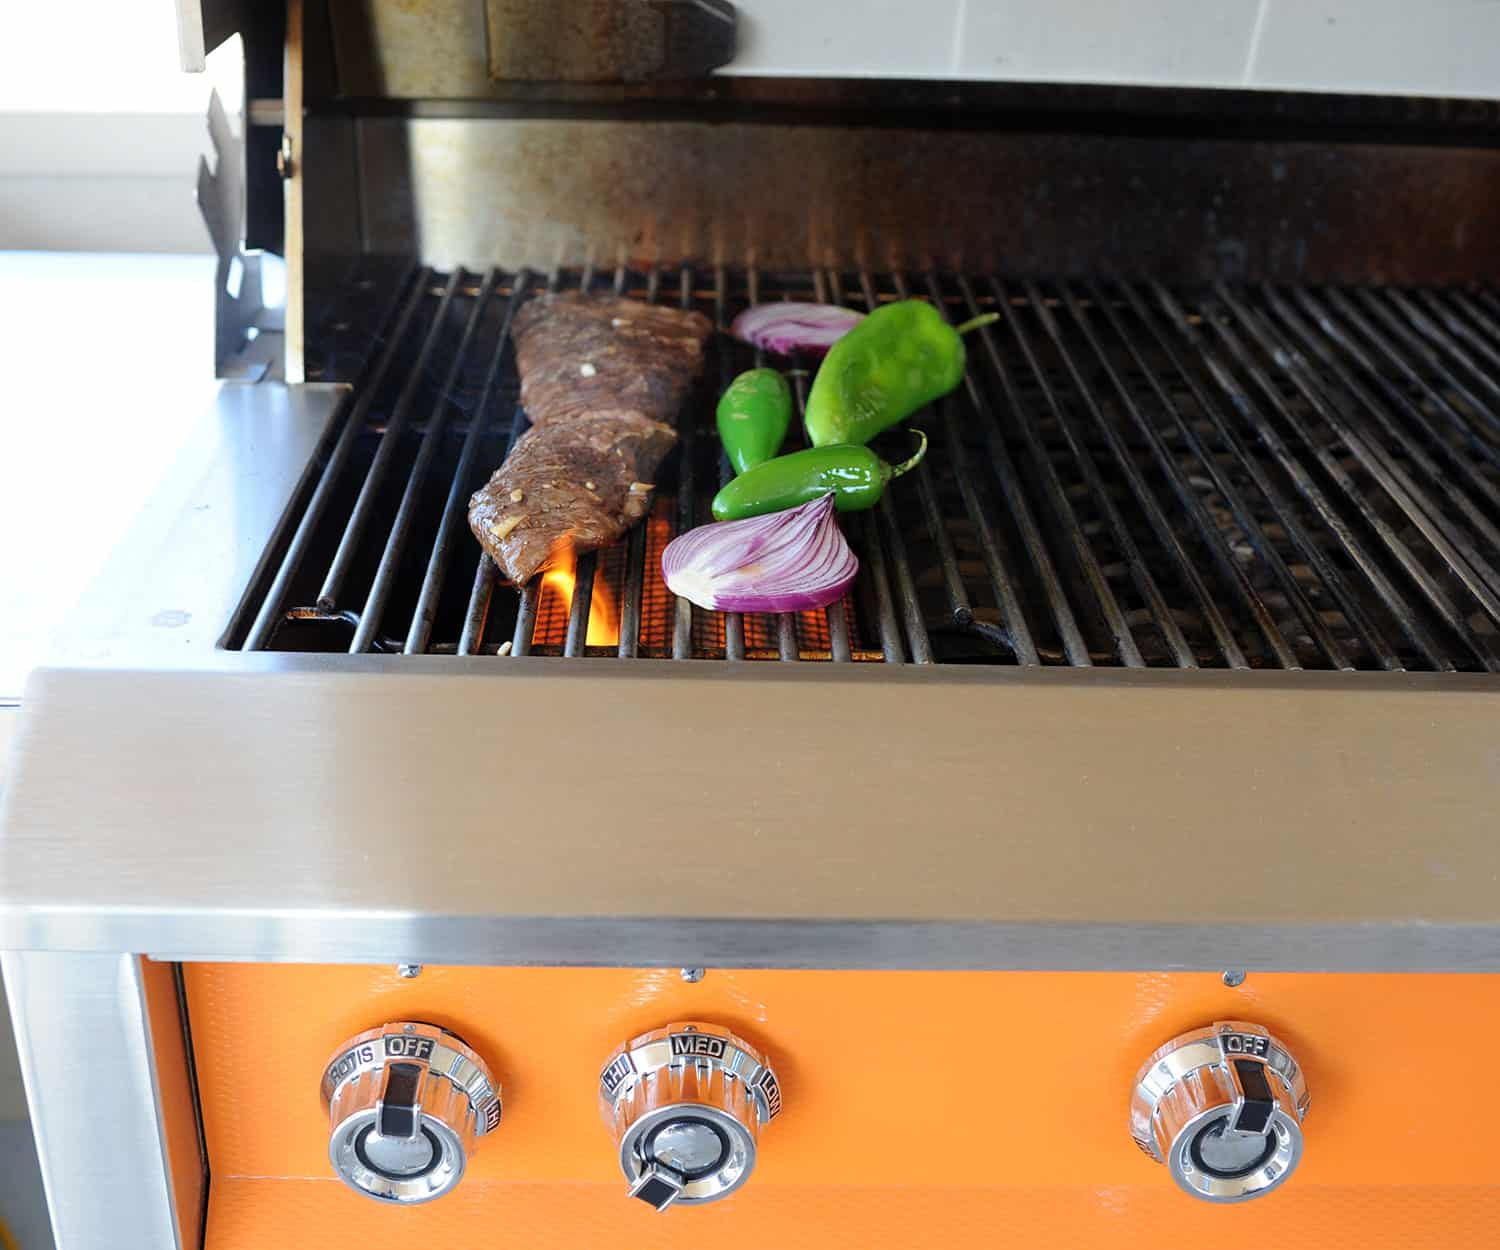 flame kissing steak on grill